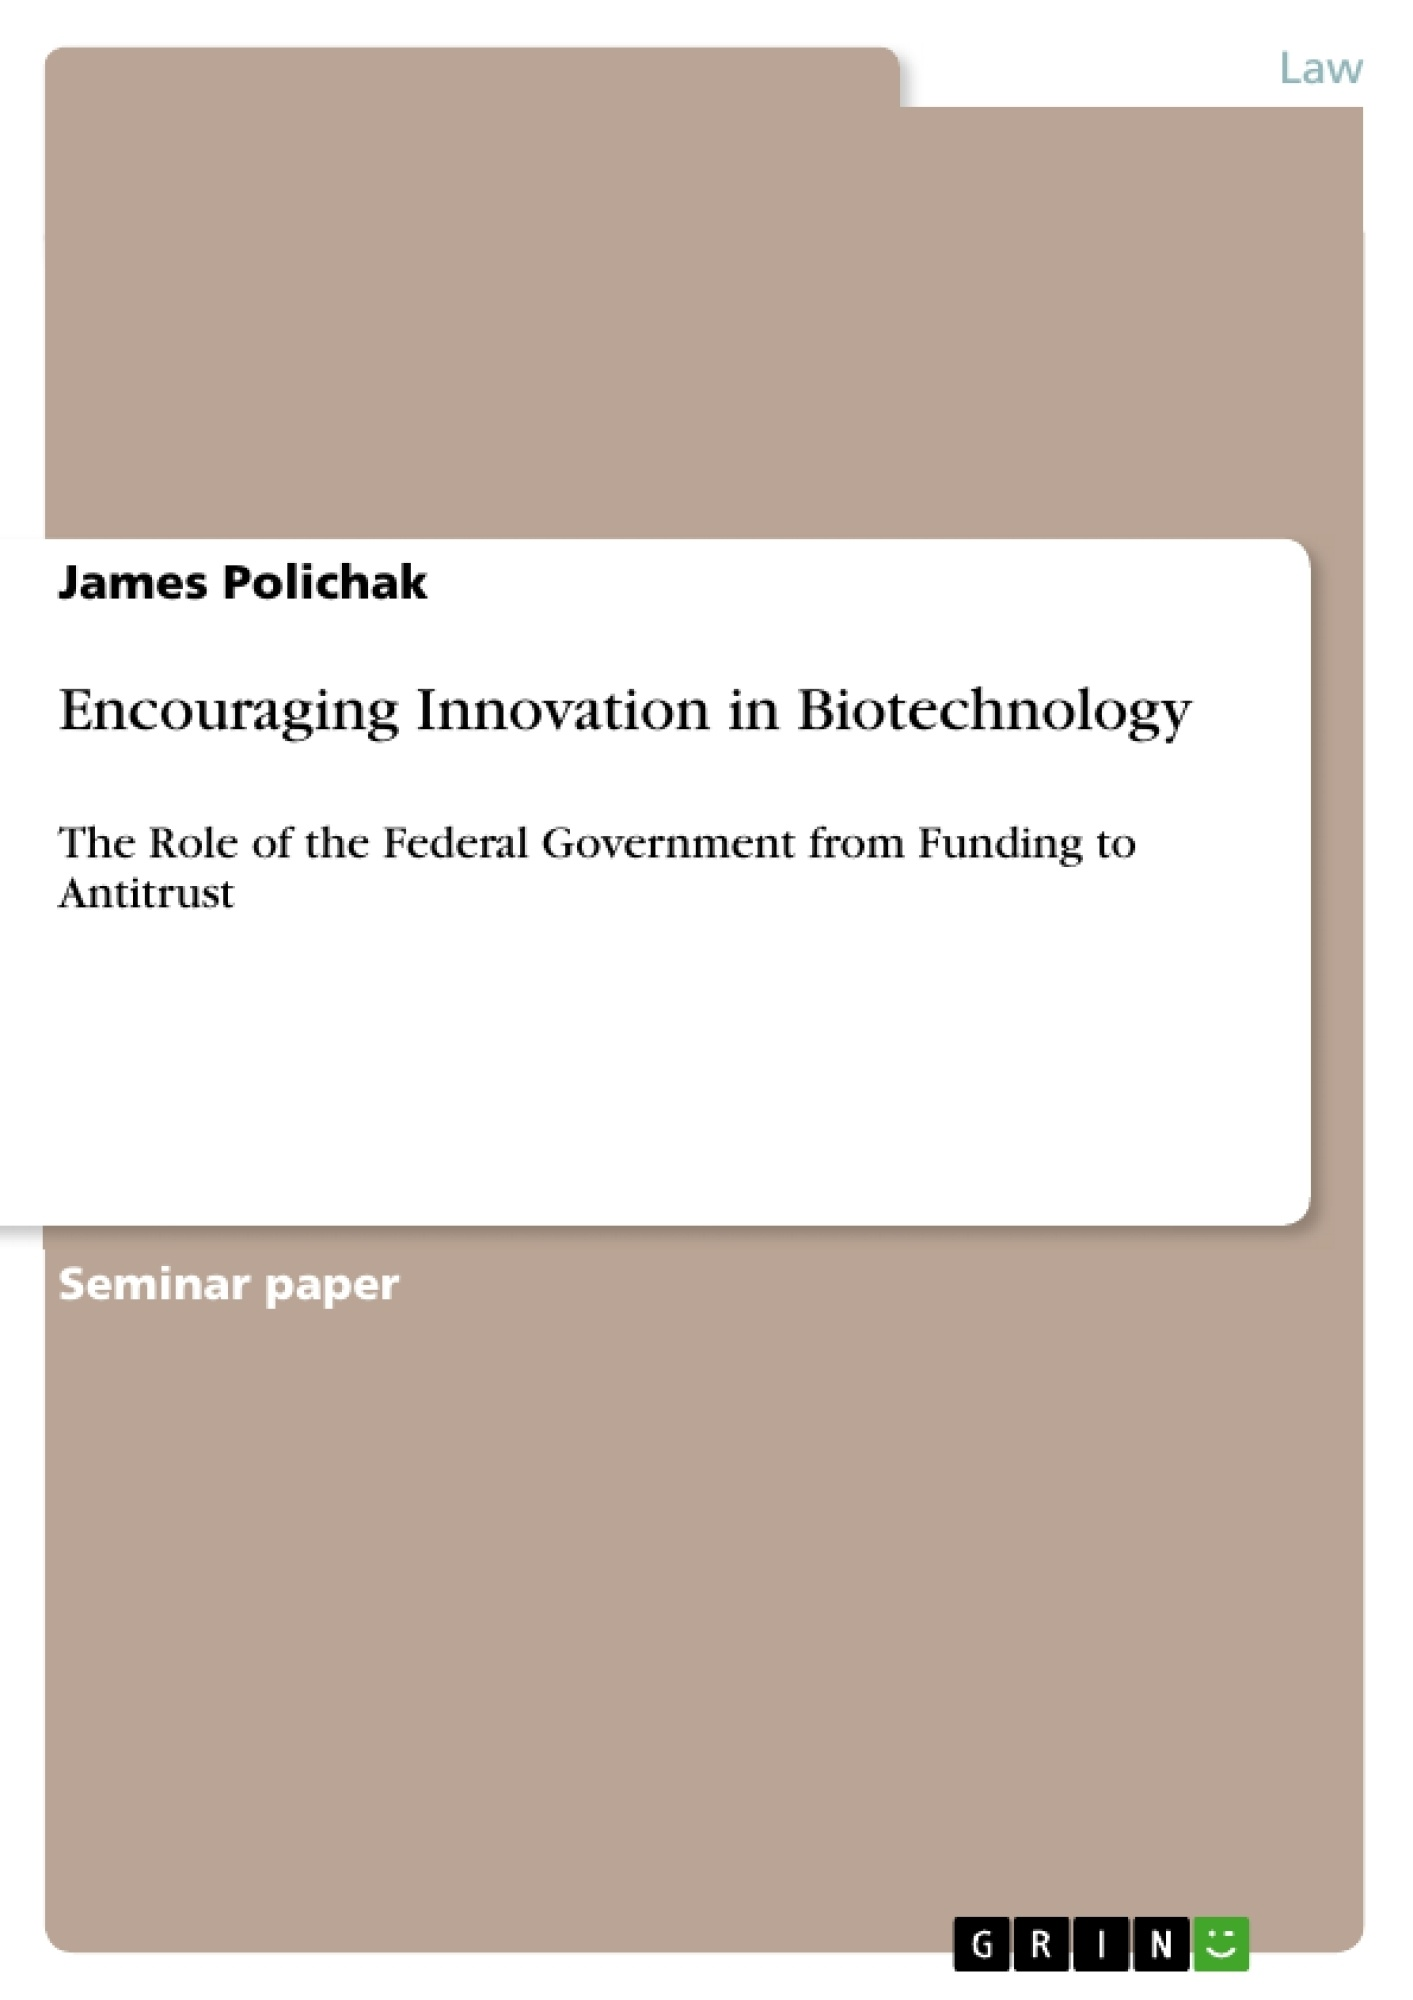 Title: Encouraging Innovation in Biotechnology